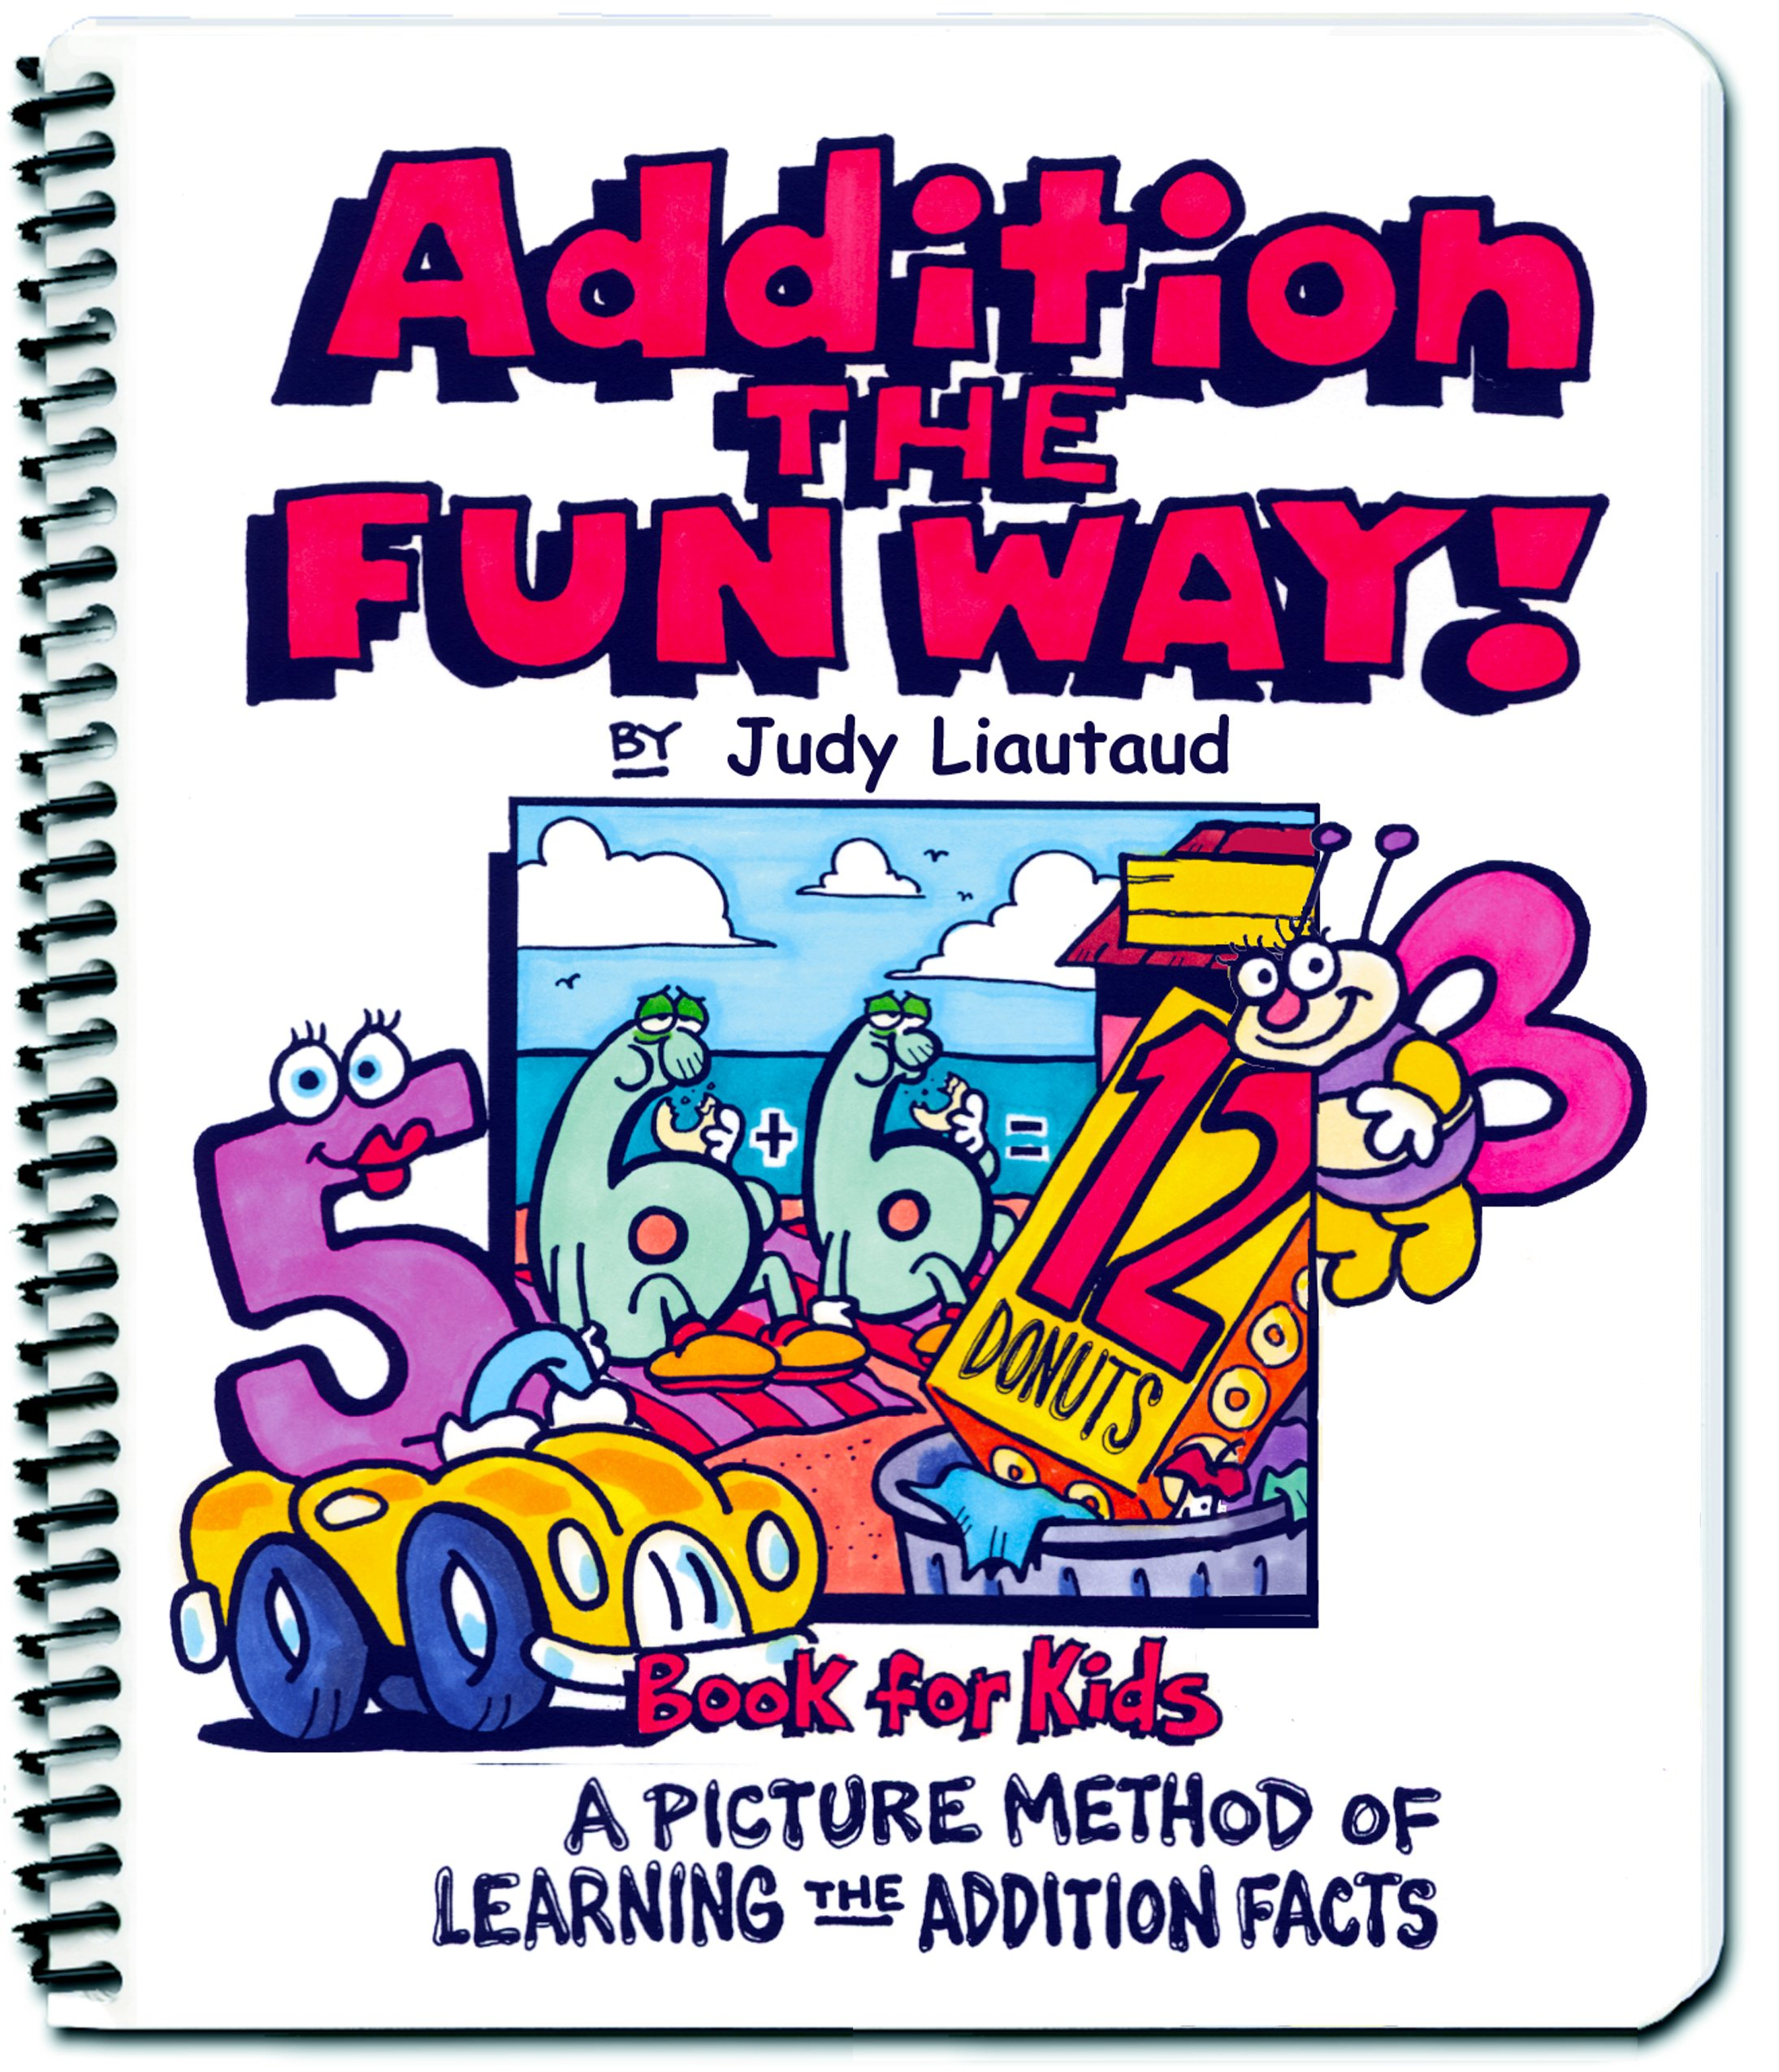 worksheet Addition Facts addition the fun way a picture method of learning facts judy liautaud val chadwick bagley 9781883841348 amazon